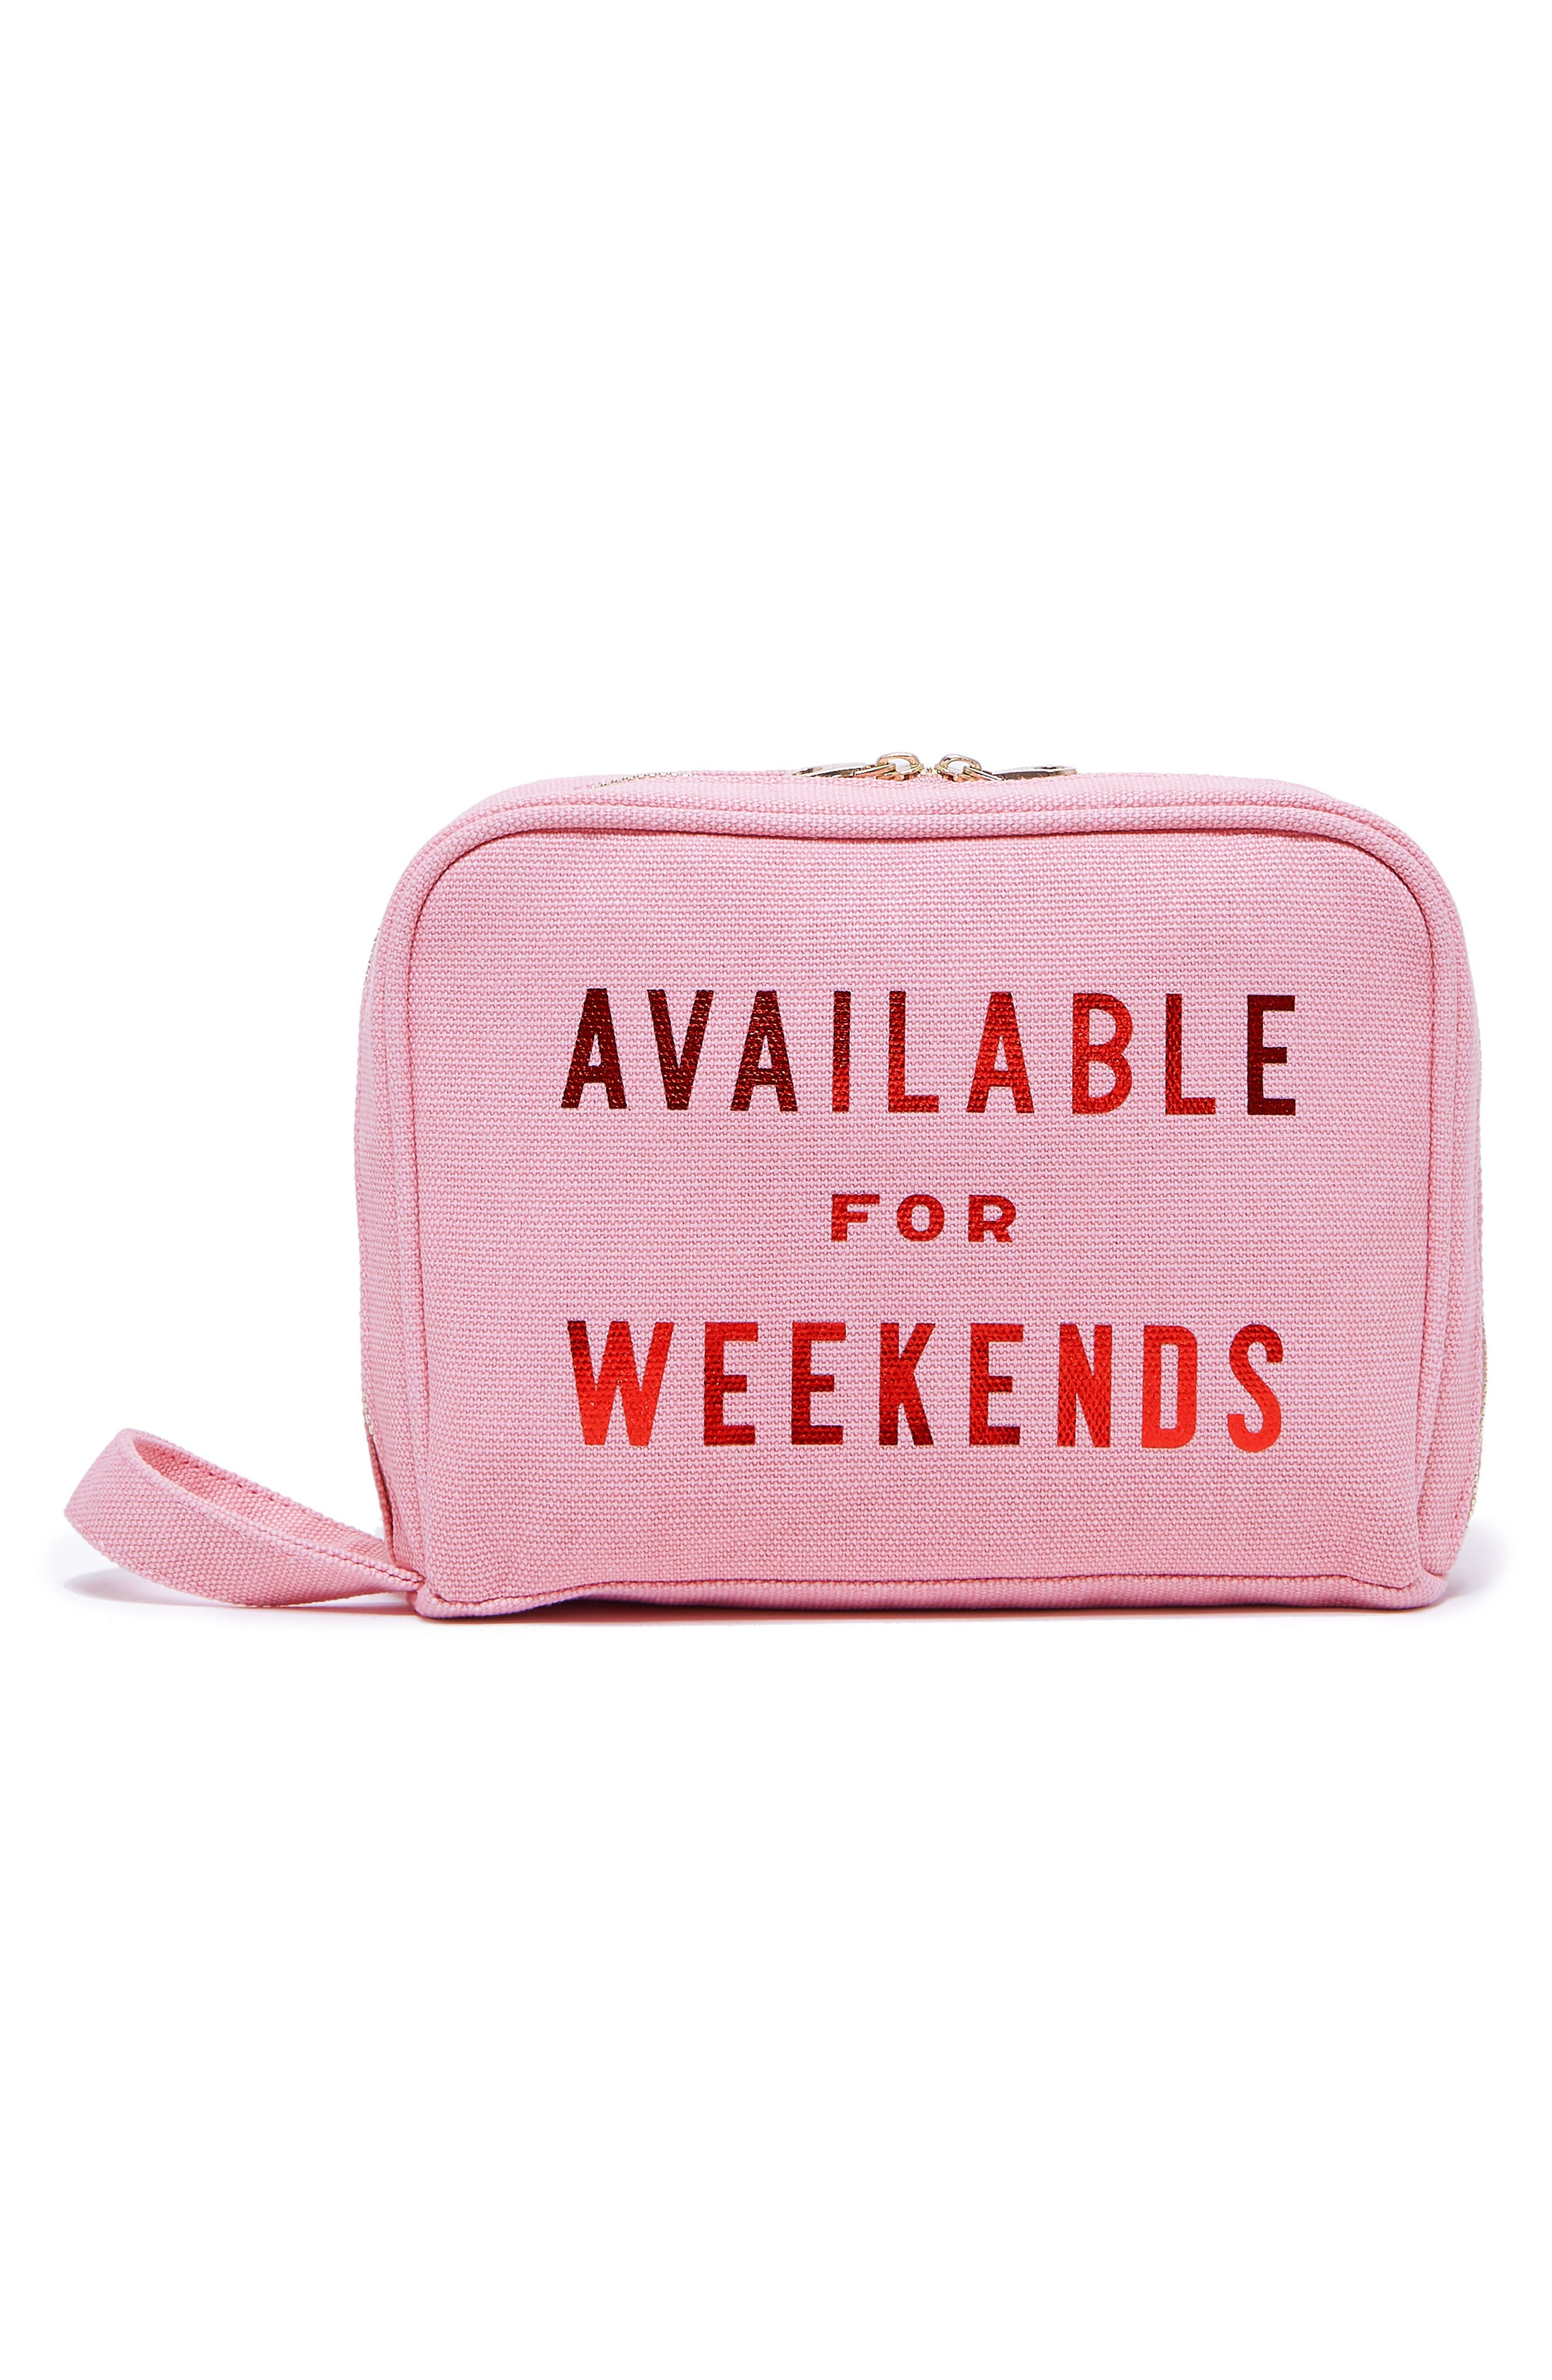 Available For Weekends Cosmetics Case,                             Main thumbnail 1, color,                             650